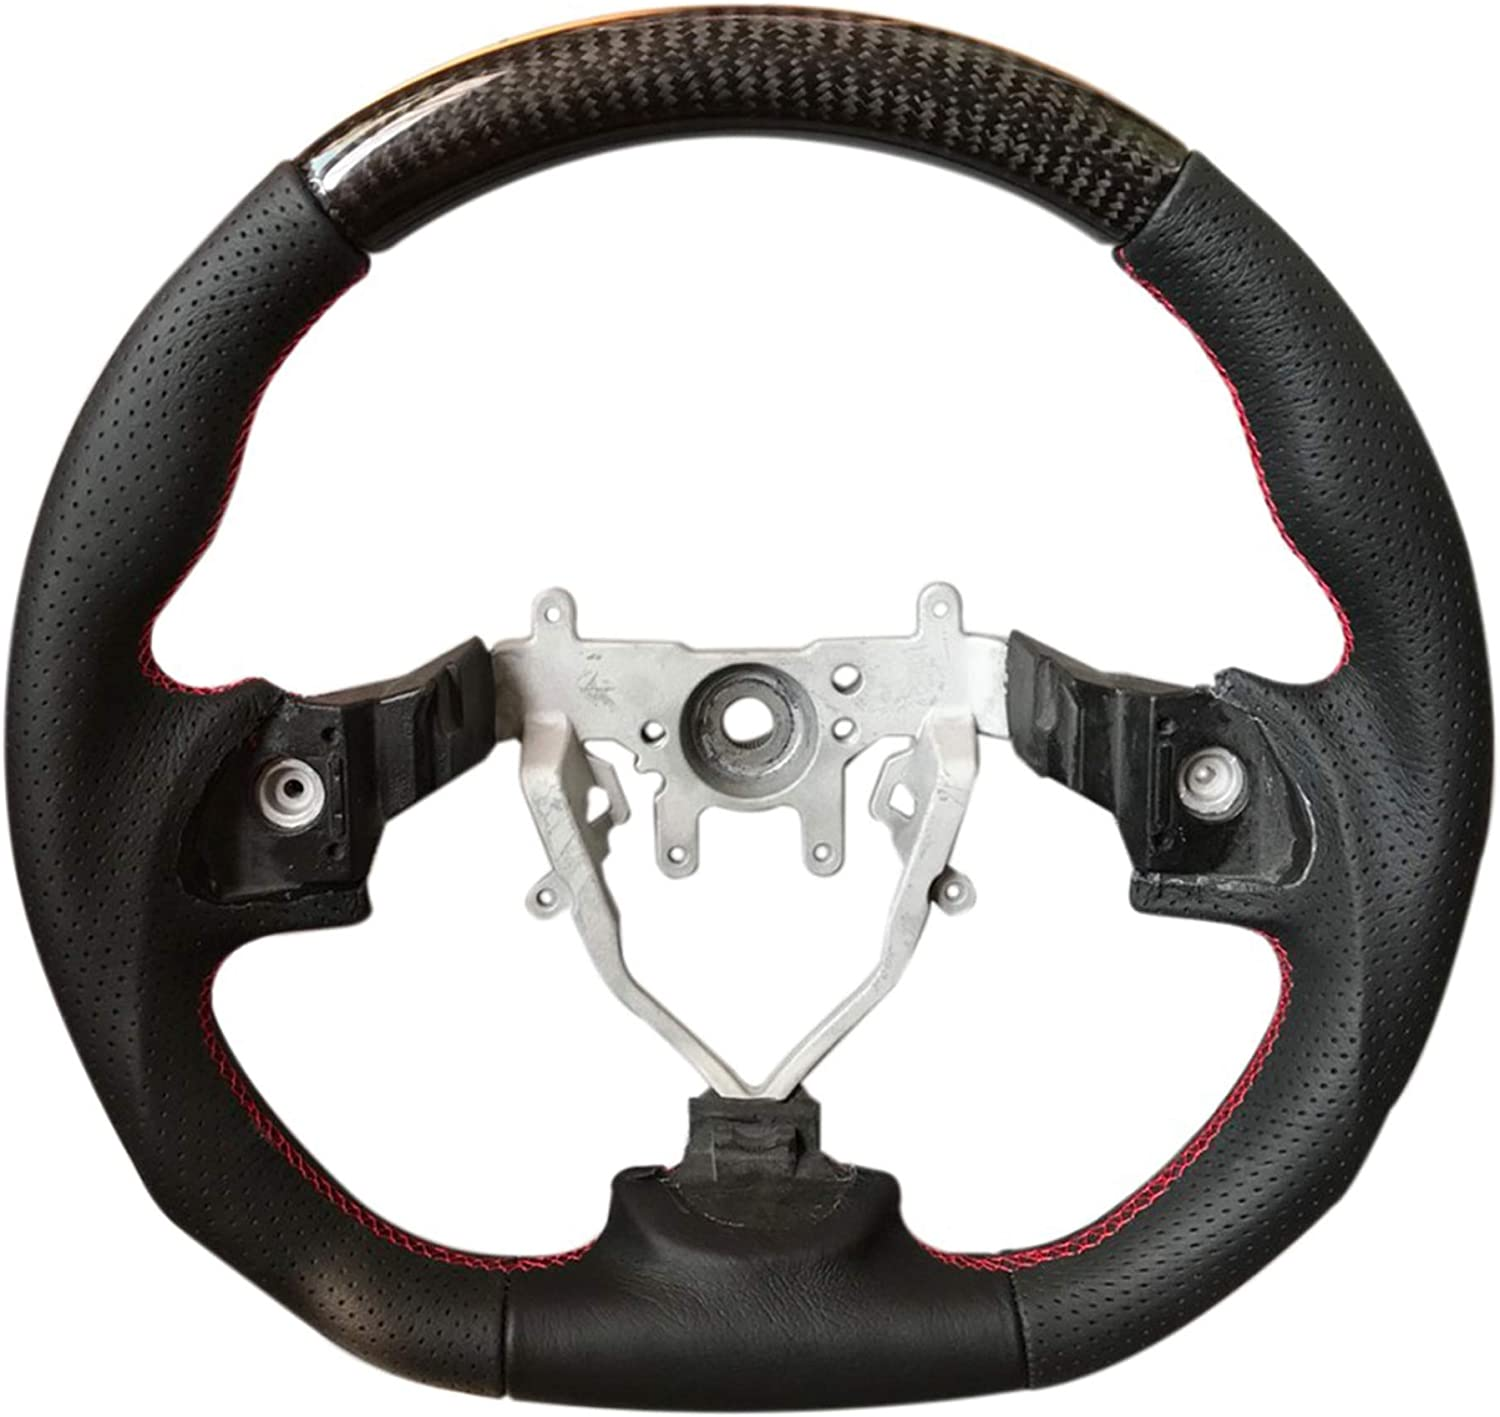 07//12 ~ SS358-DL Red Stitch A ~ DAMD STEERING WHEEL For IMPREZA WRX-STI GR GV